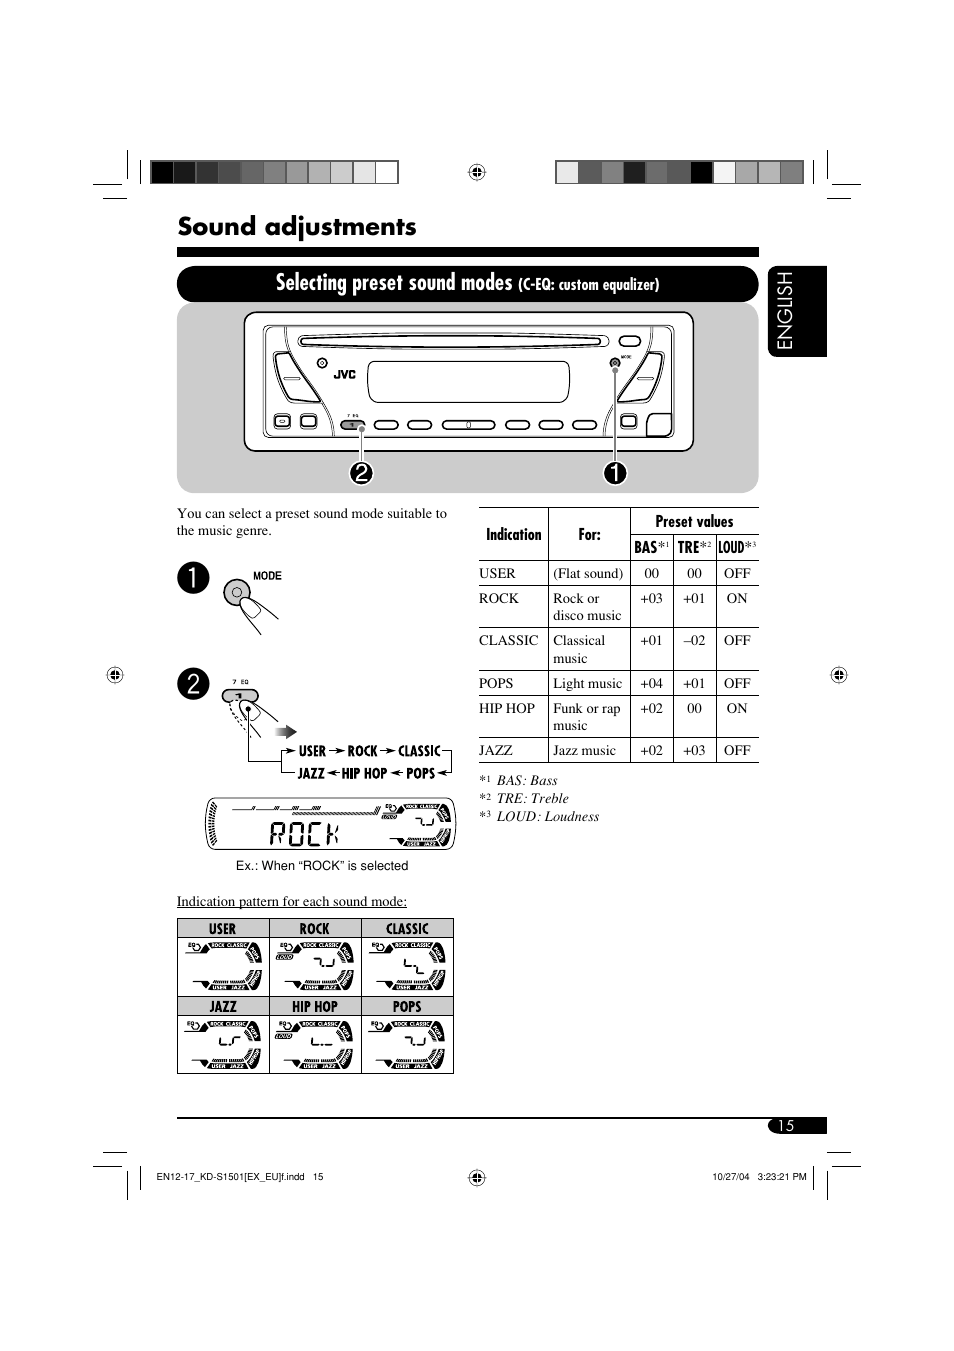 Sound adjustments, Selecting preset sound modes, English